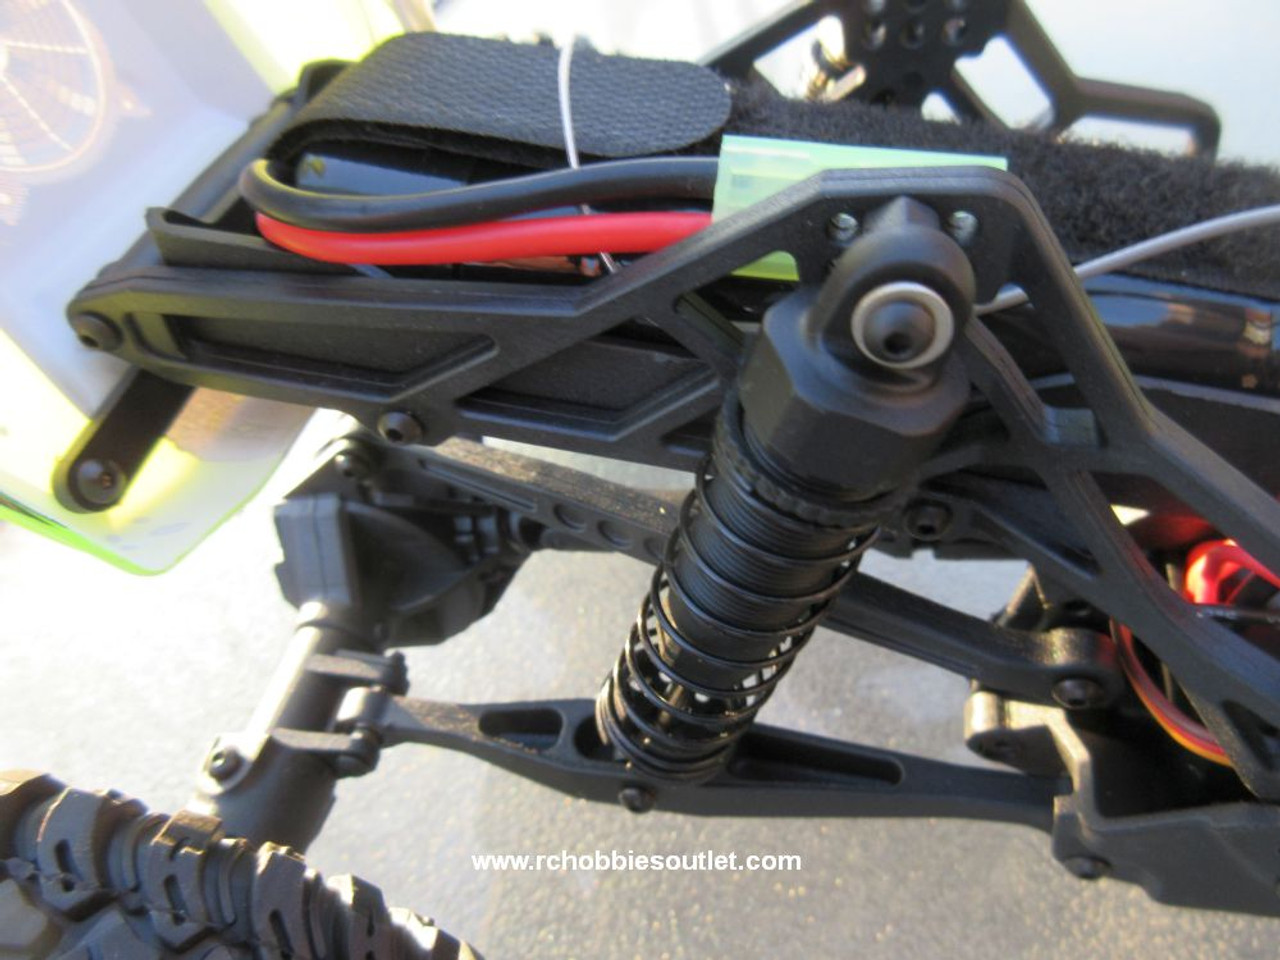 Easy Battery access and mid-rear  Shock